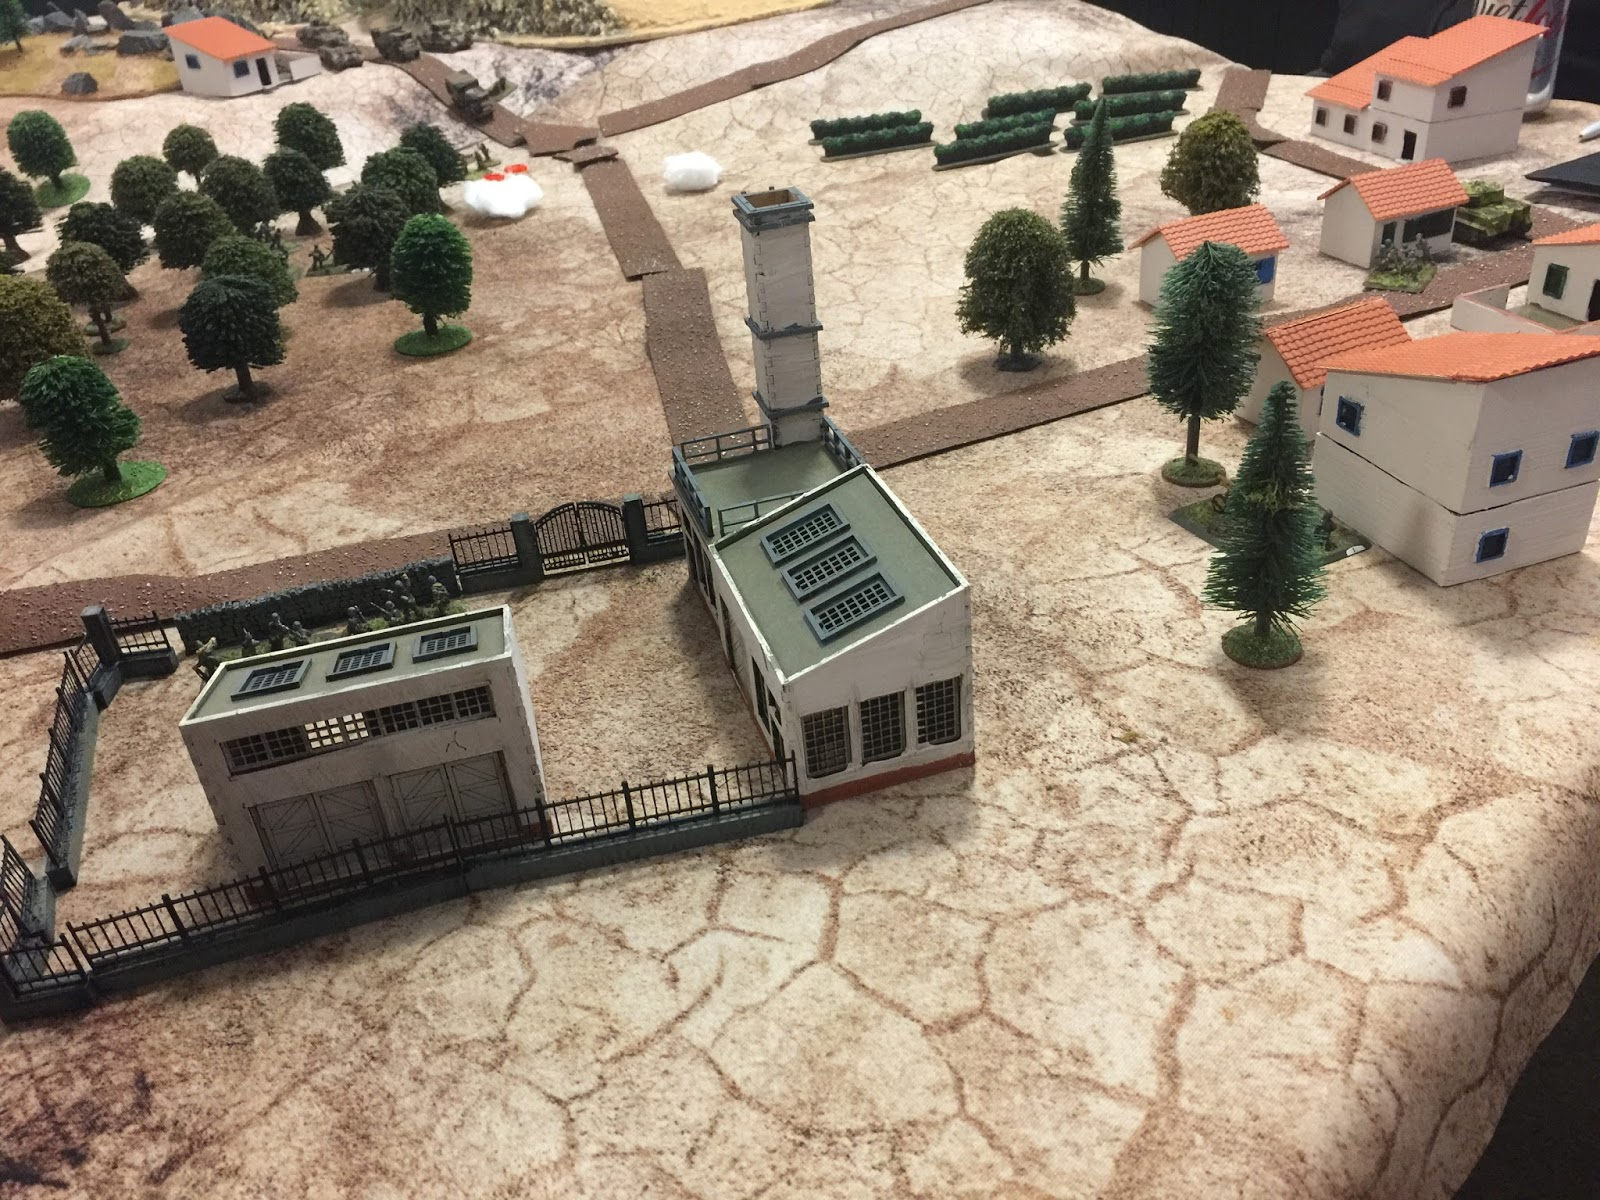 The fun's already started, as a section of British 3 platoon, sent out in advance by the CO to see what's afoot, has dismounted from its trucks,wandered into the olive grove and just about fallen over two sections of the German infantry Zug. It was rather rapidly reduced to 0 actions.